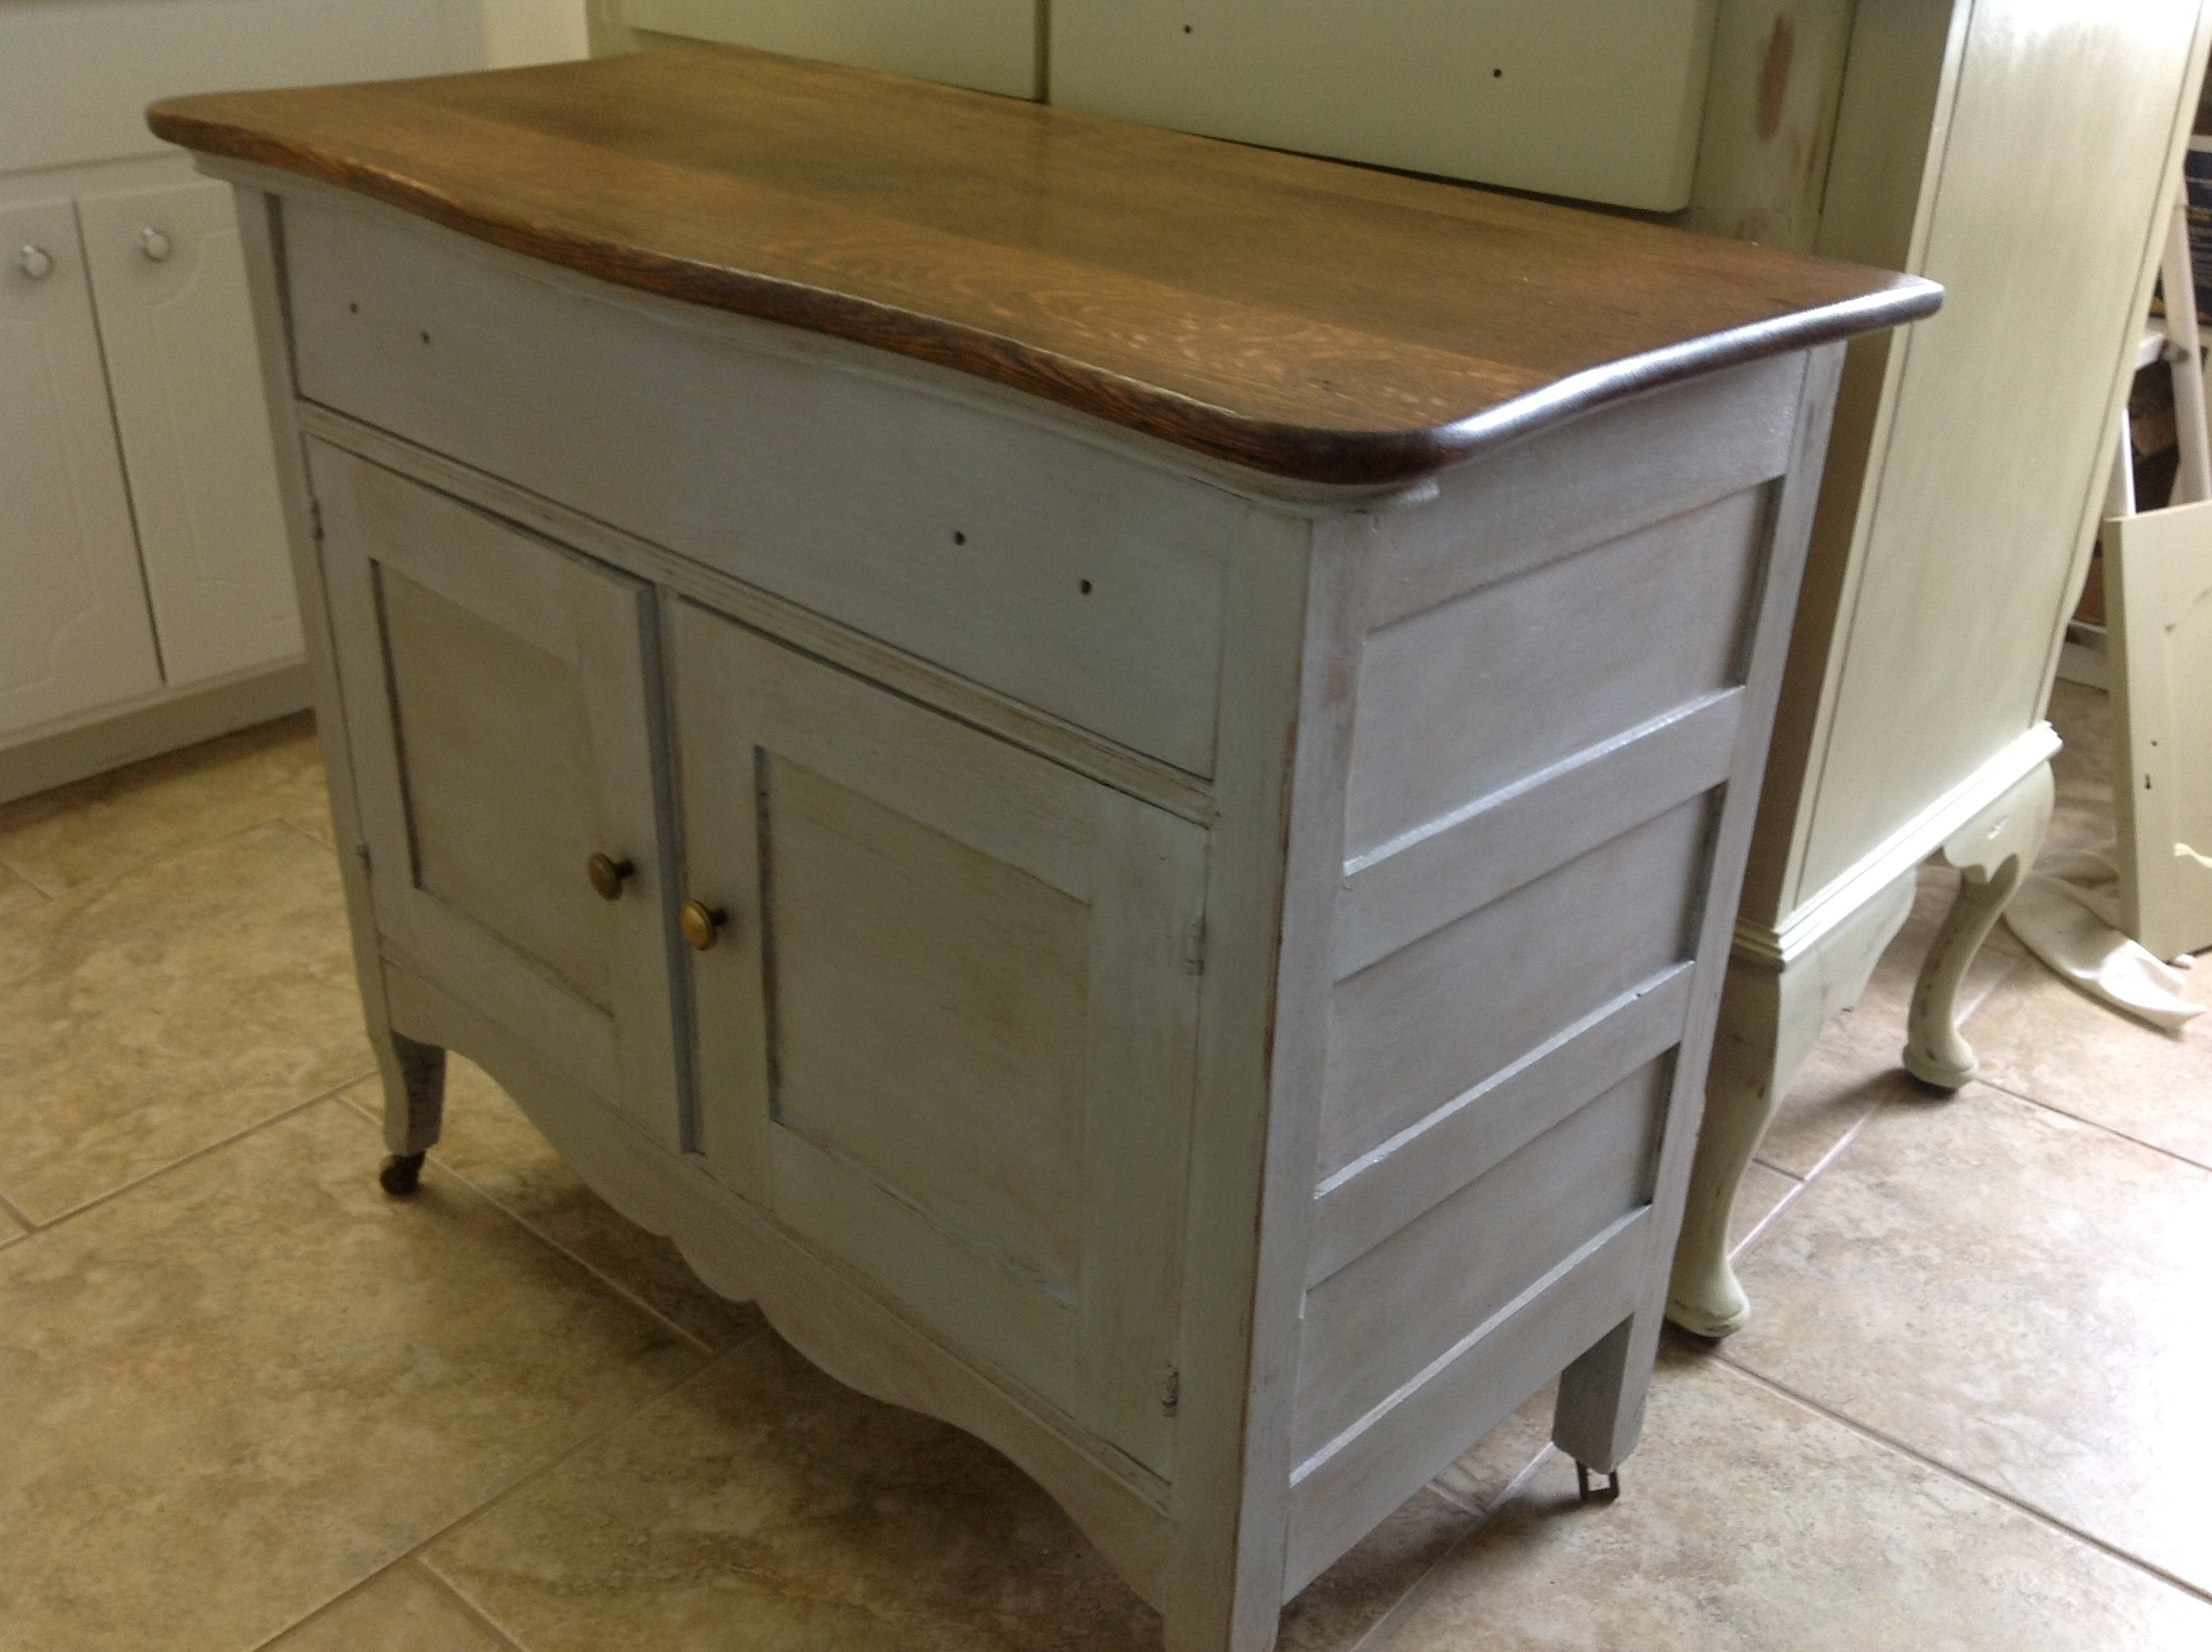 Bathroom Vanity Cabinets Without Sinks